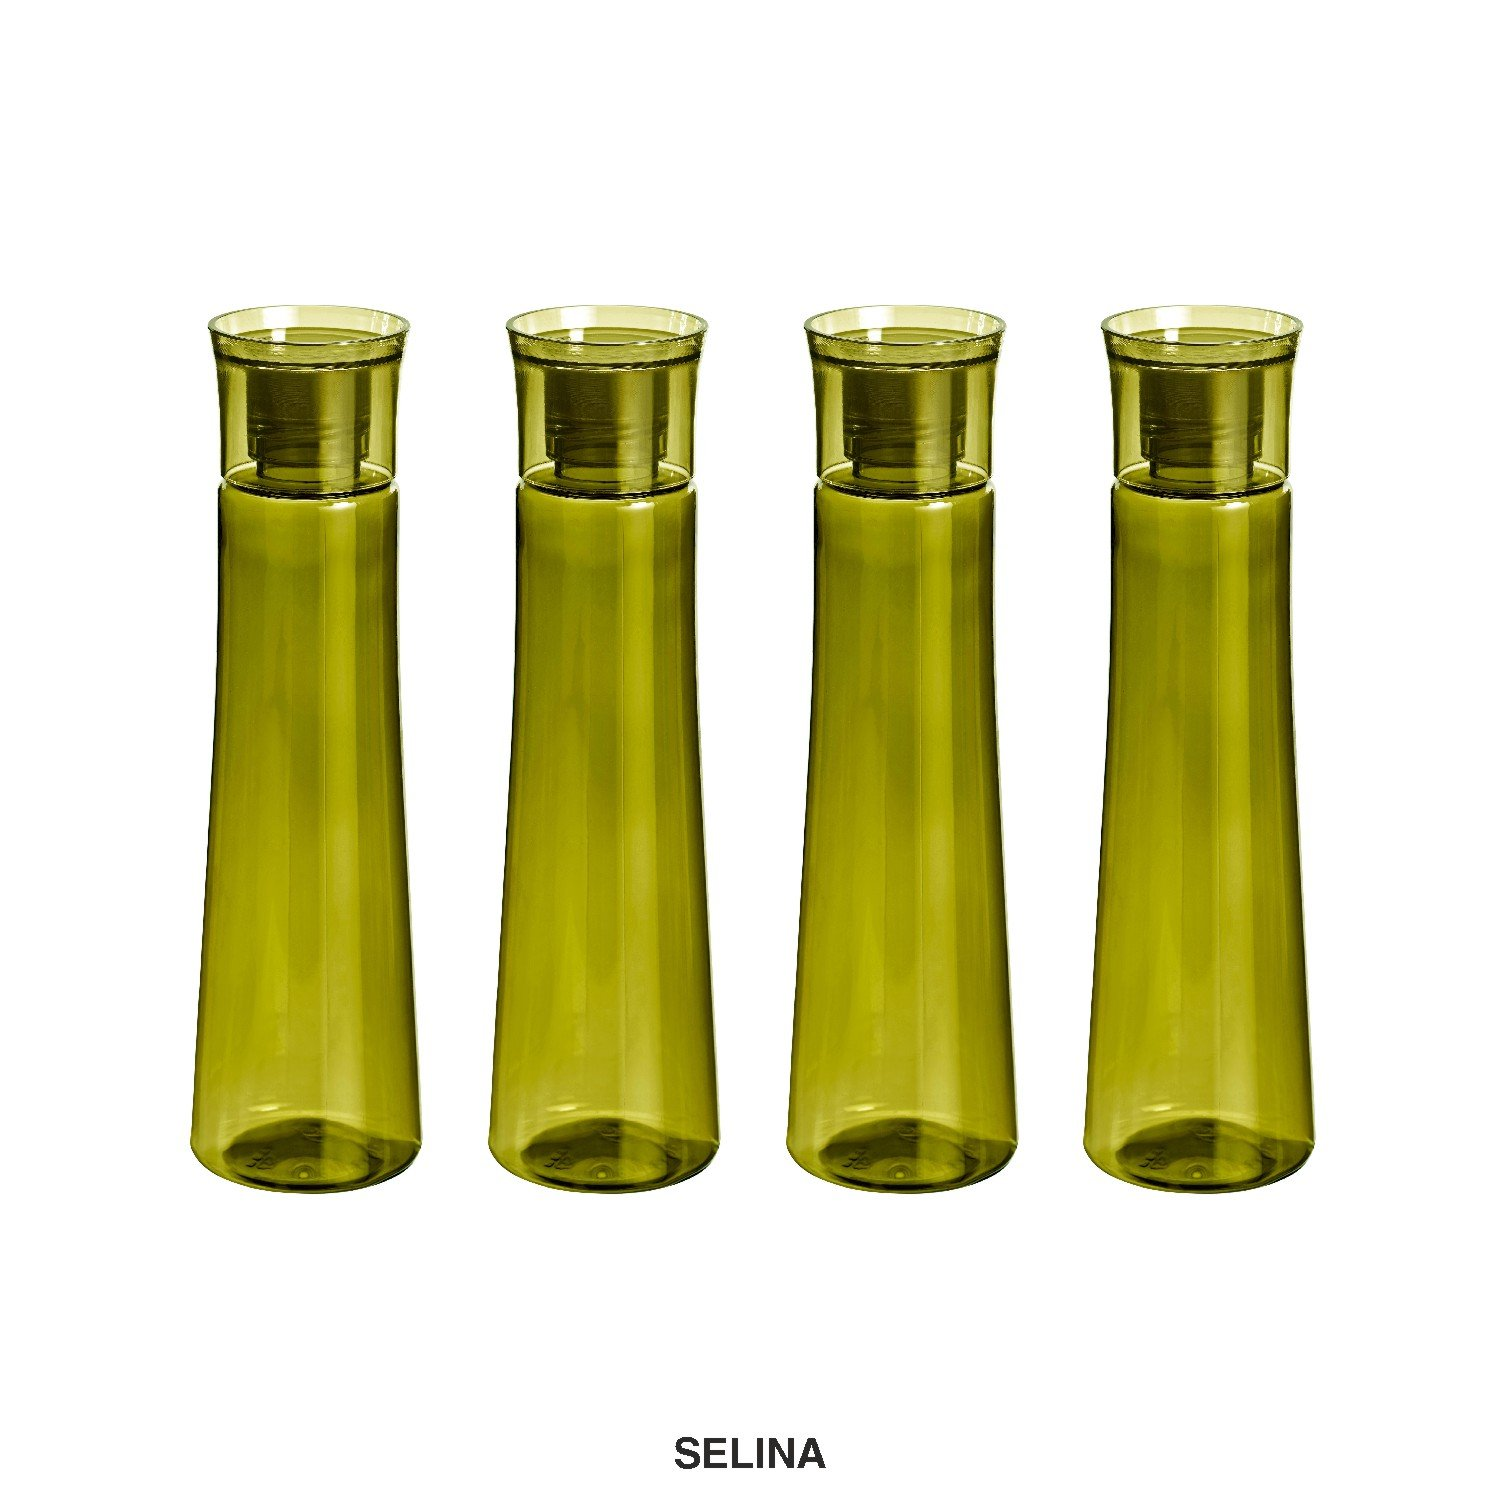 Steelo Selina Plastic Water Bottle, 1 Litre, Set of 4, Oliver Green (B0796TTXRN) Amazon Price History, Amazon Price Tracker